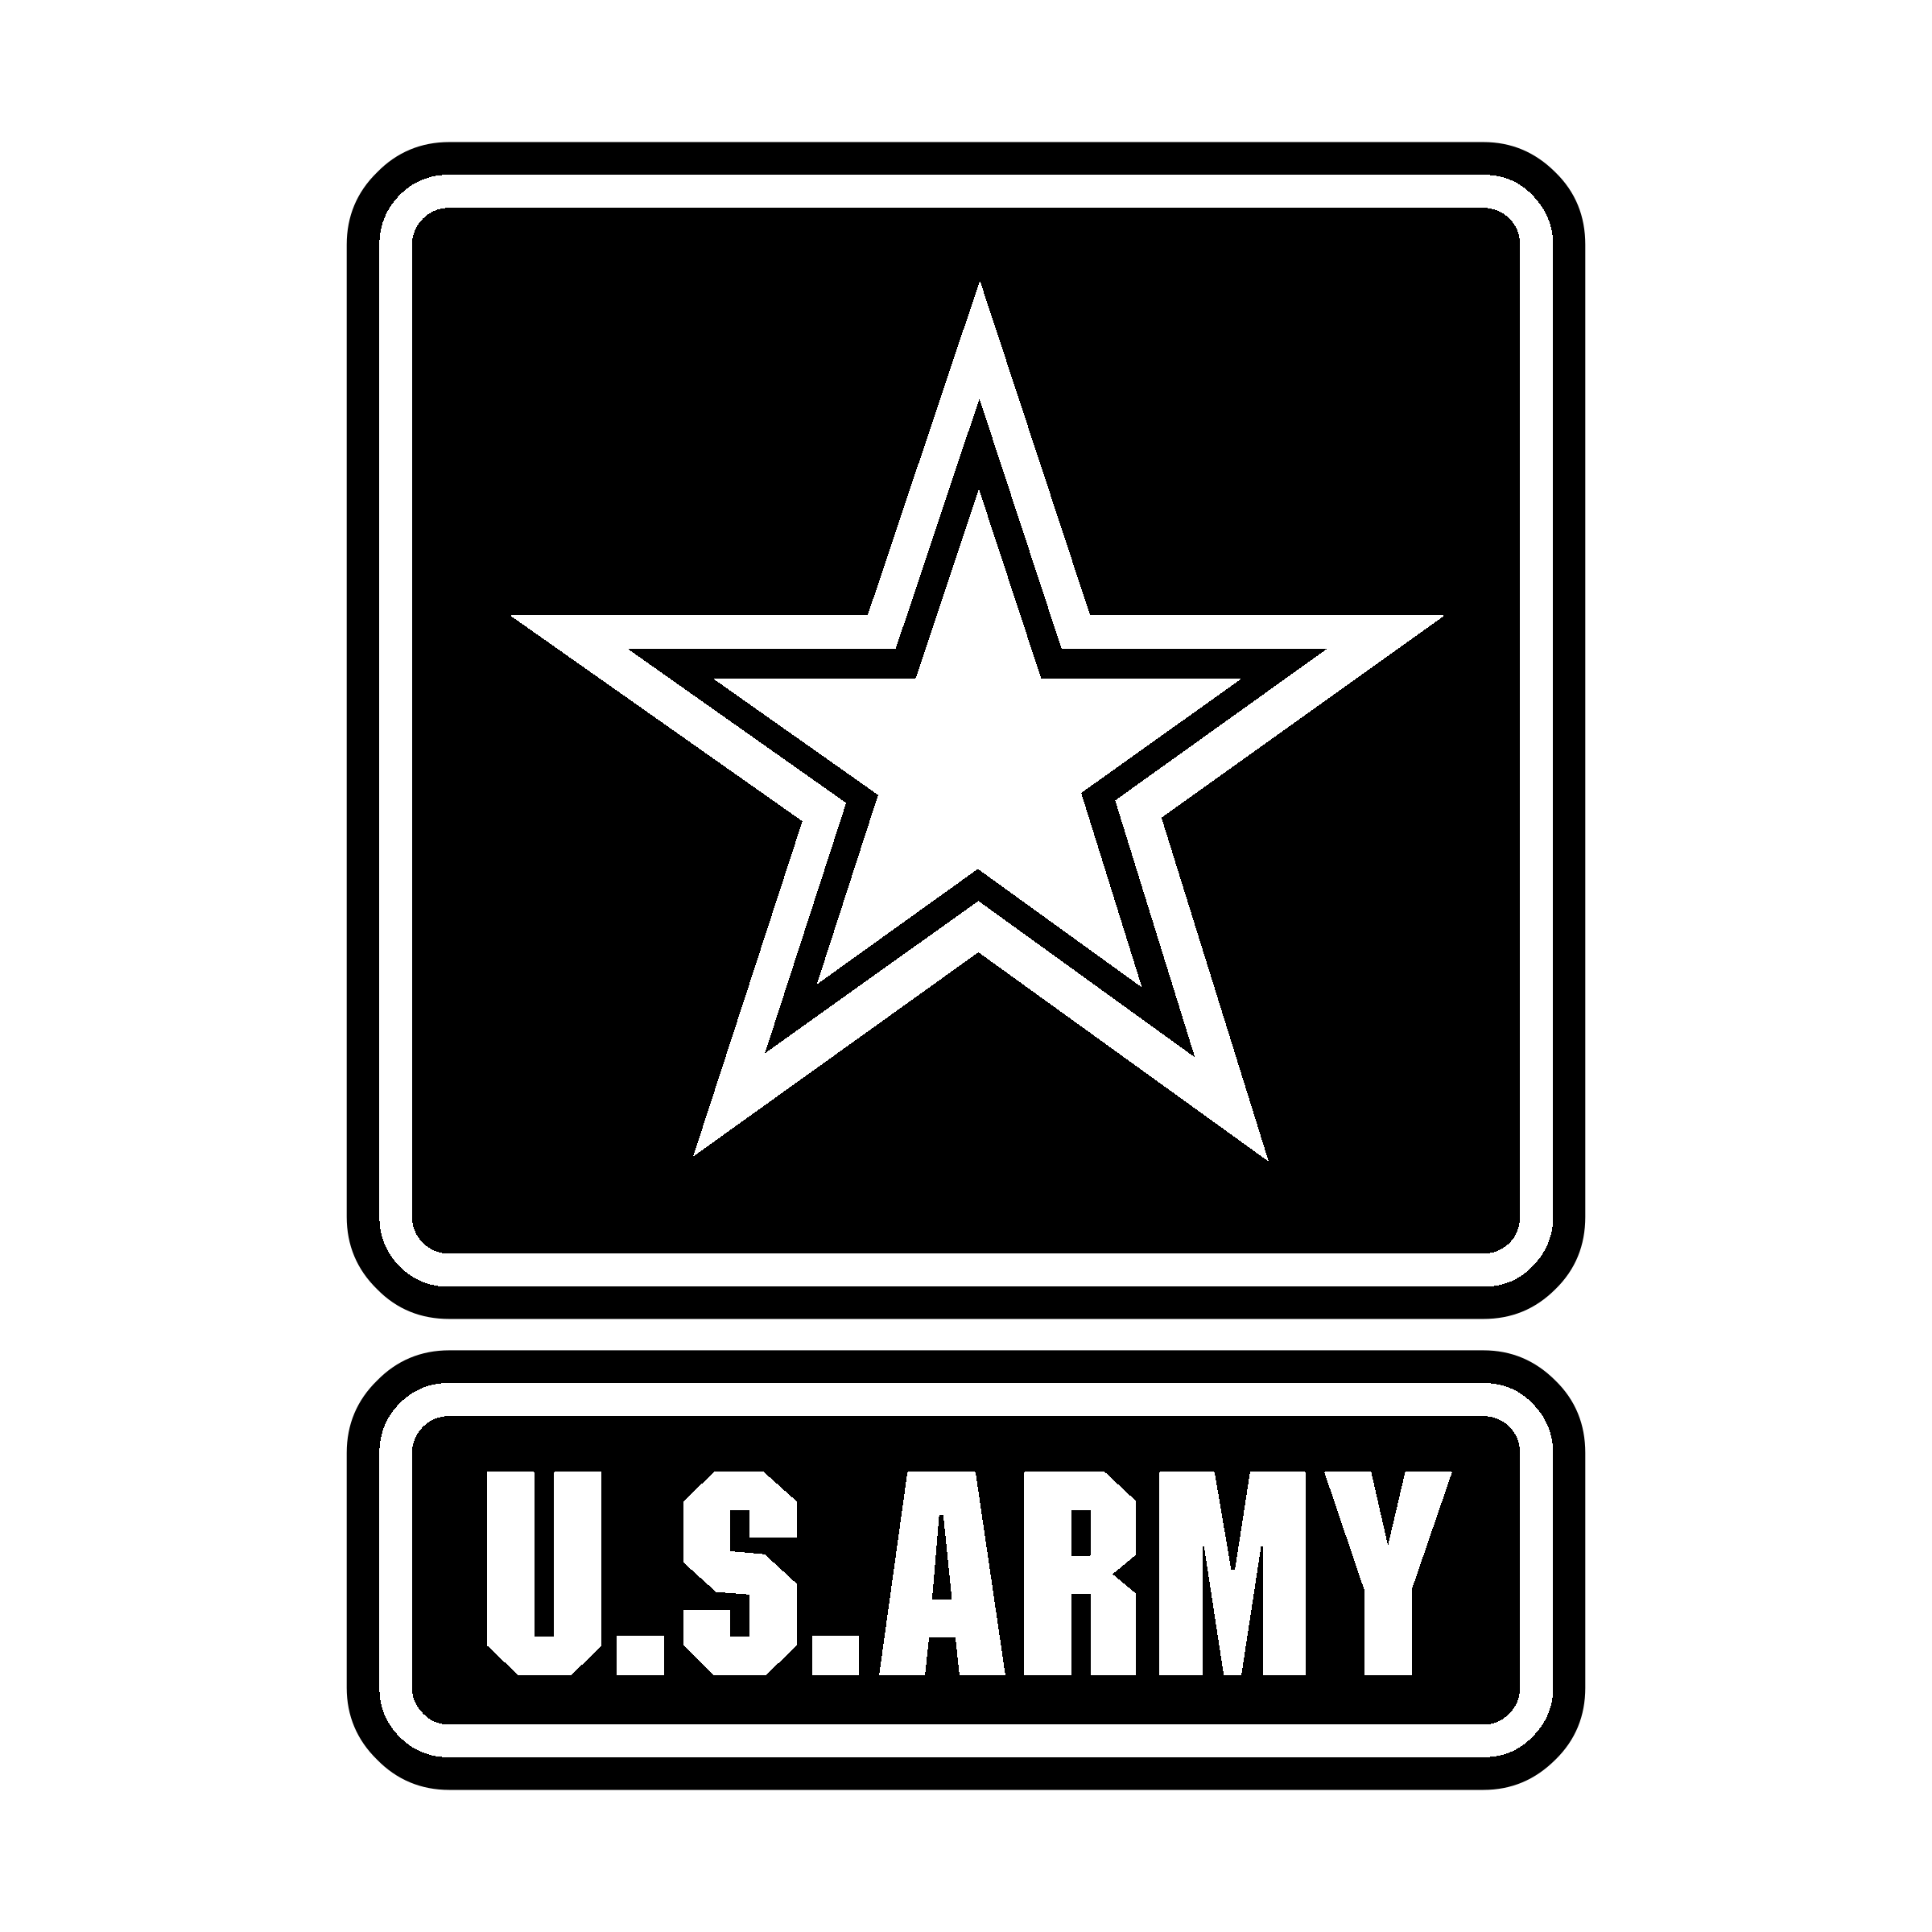 Army logo png. Us transparent svg vector